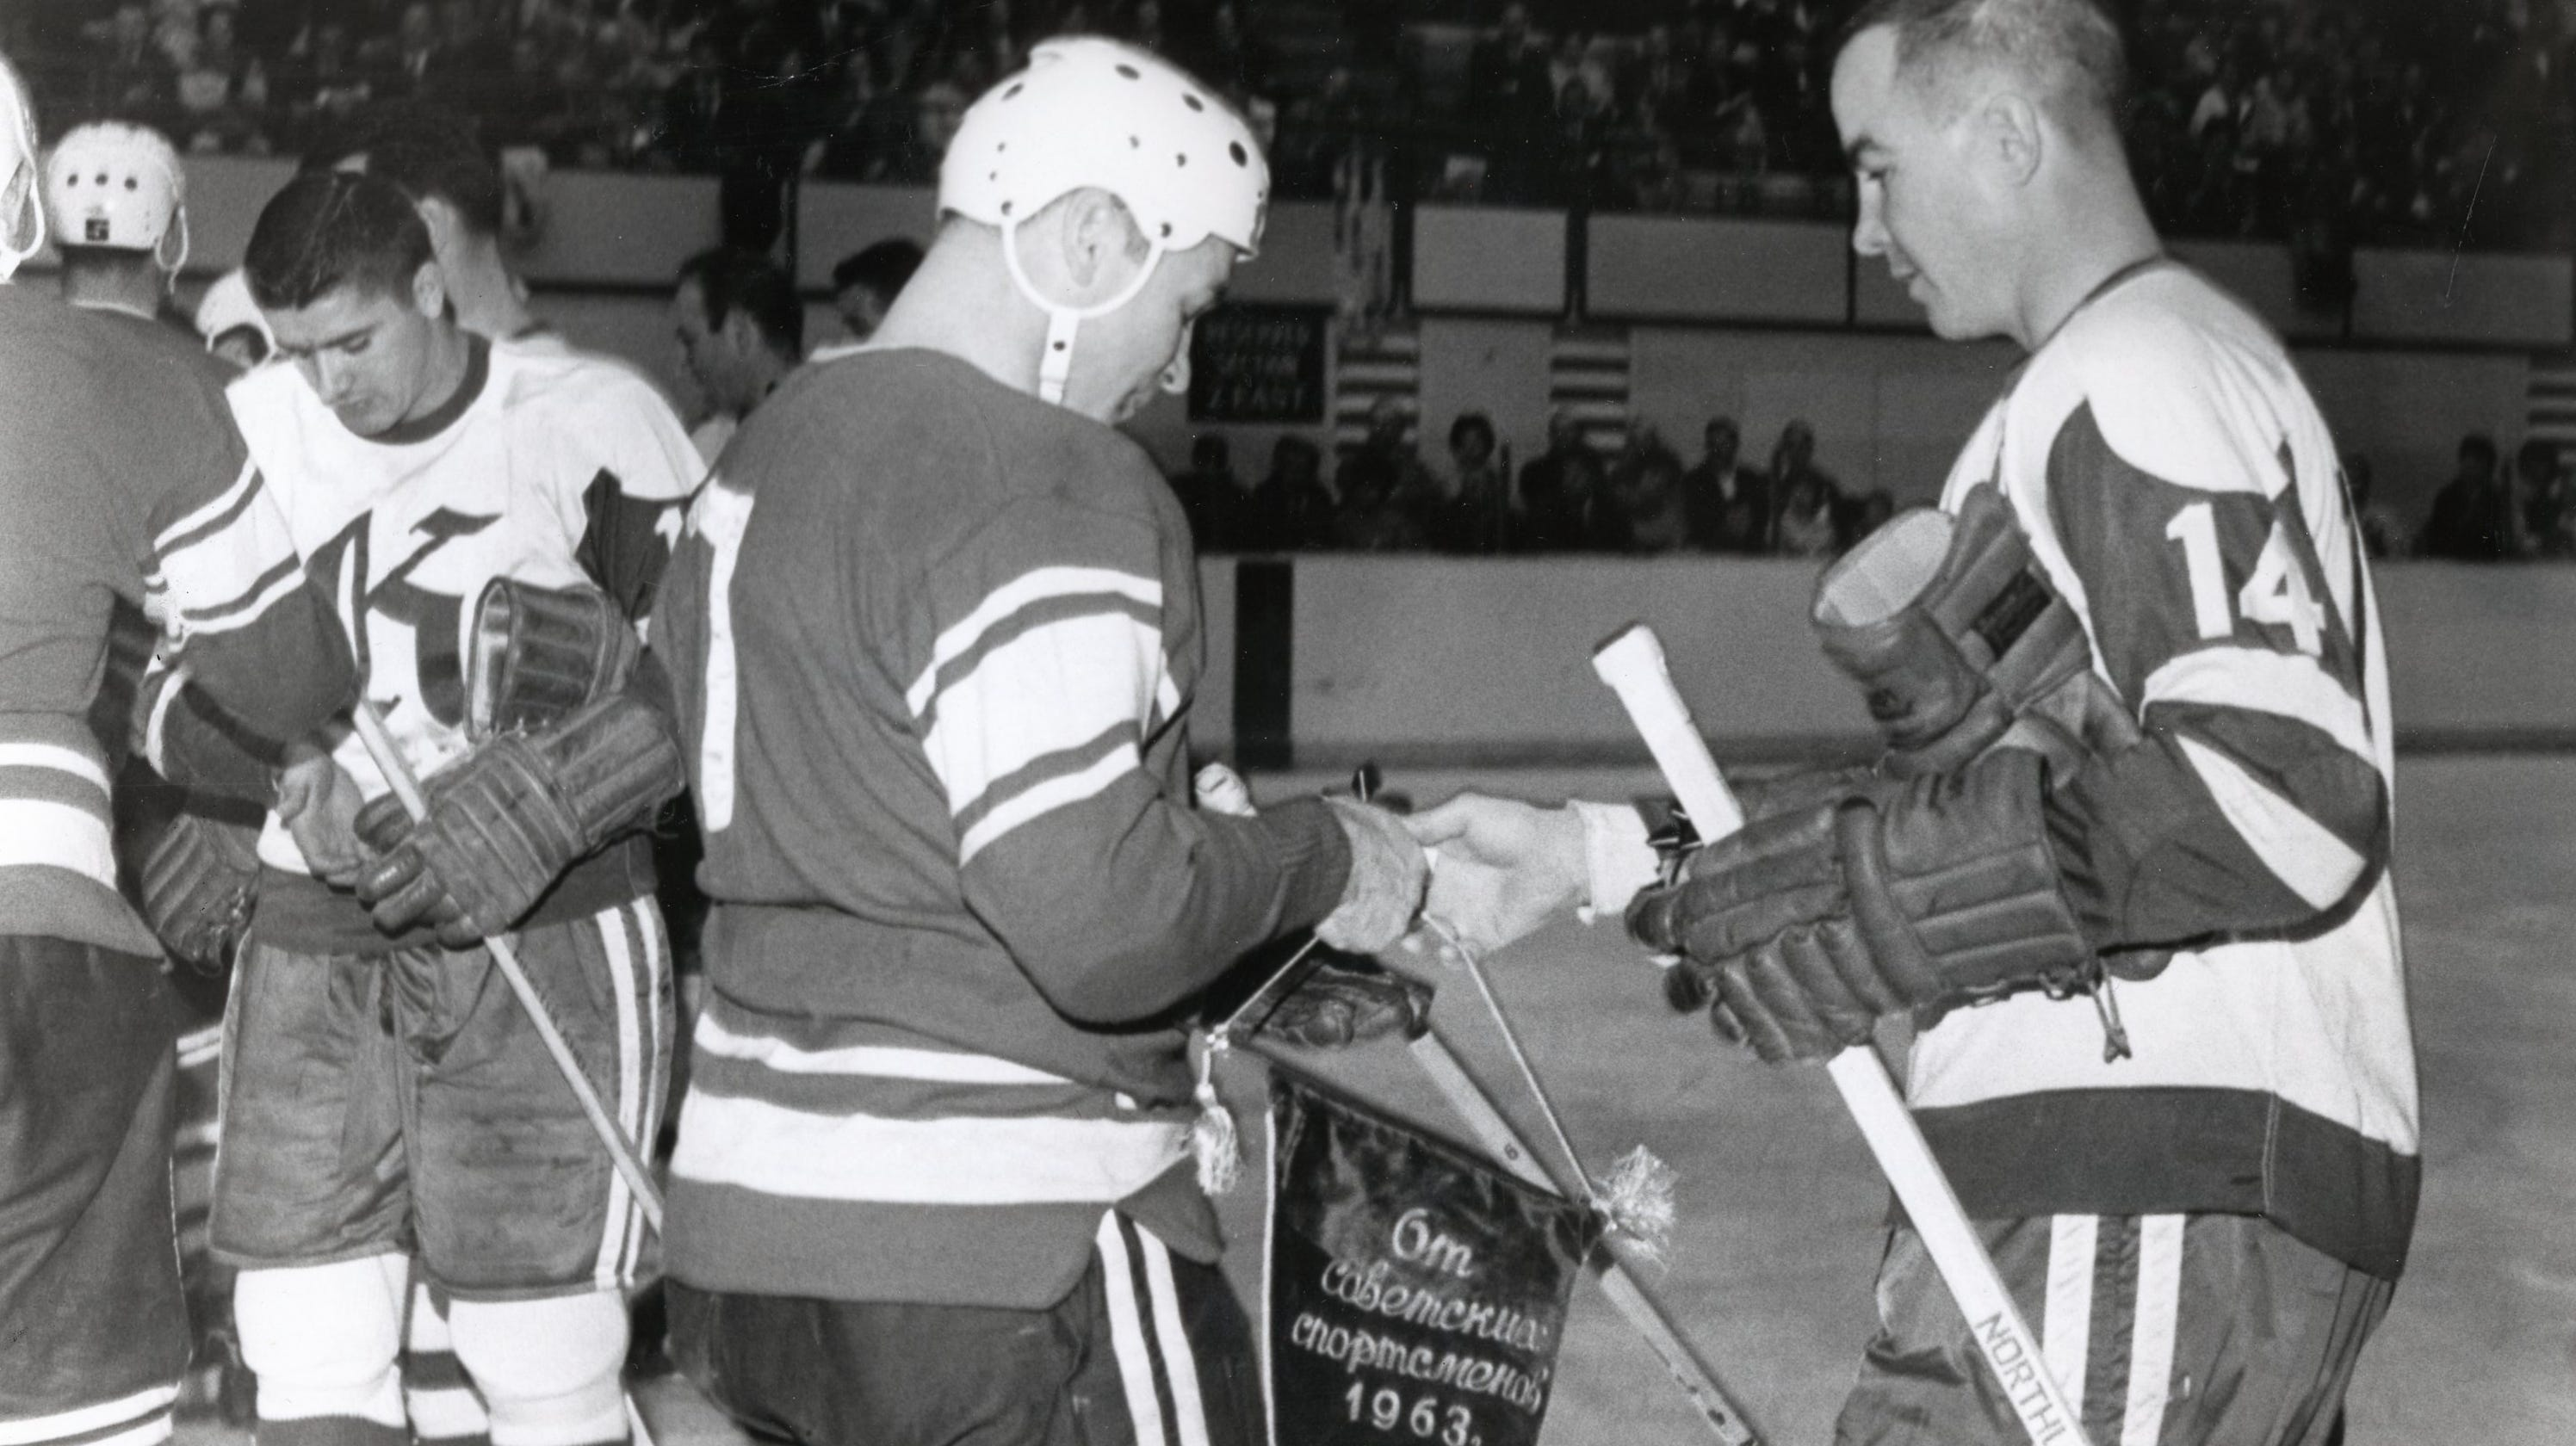 When Knoxville played the Soviets at Civic Coliseum in 1963